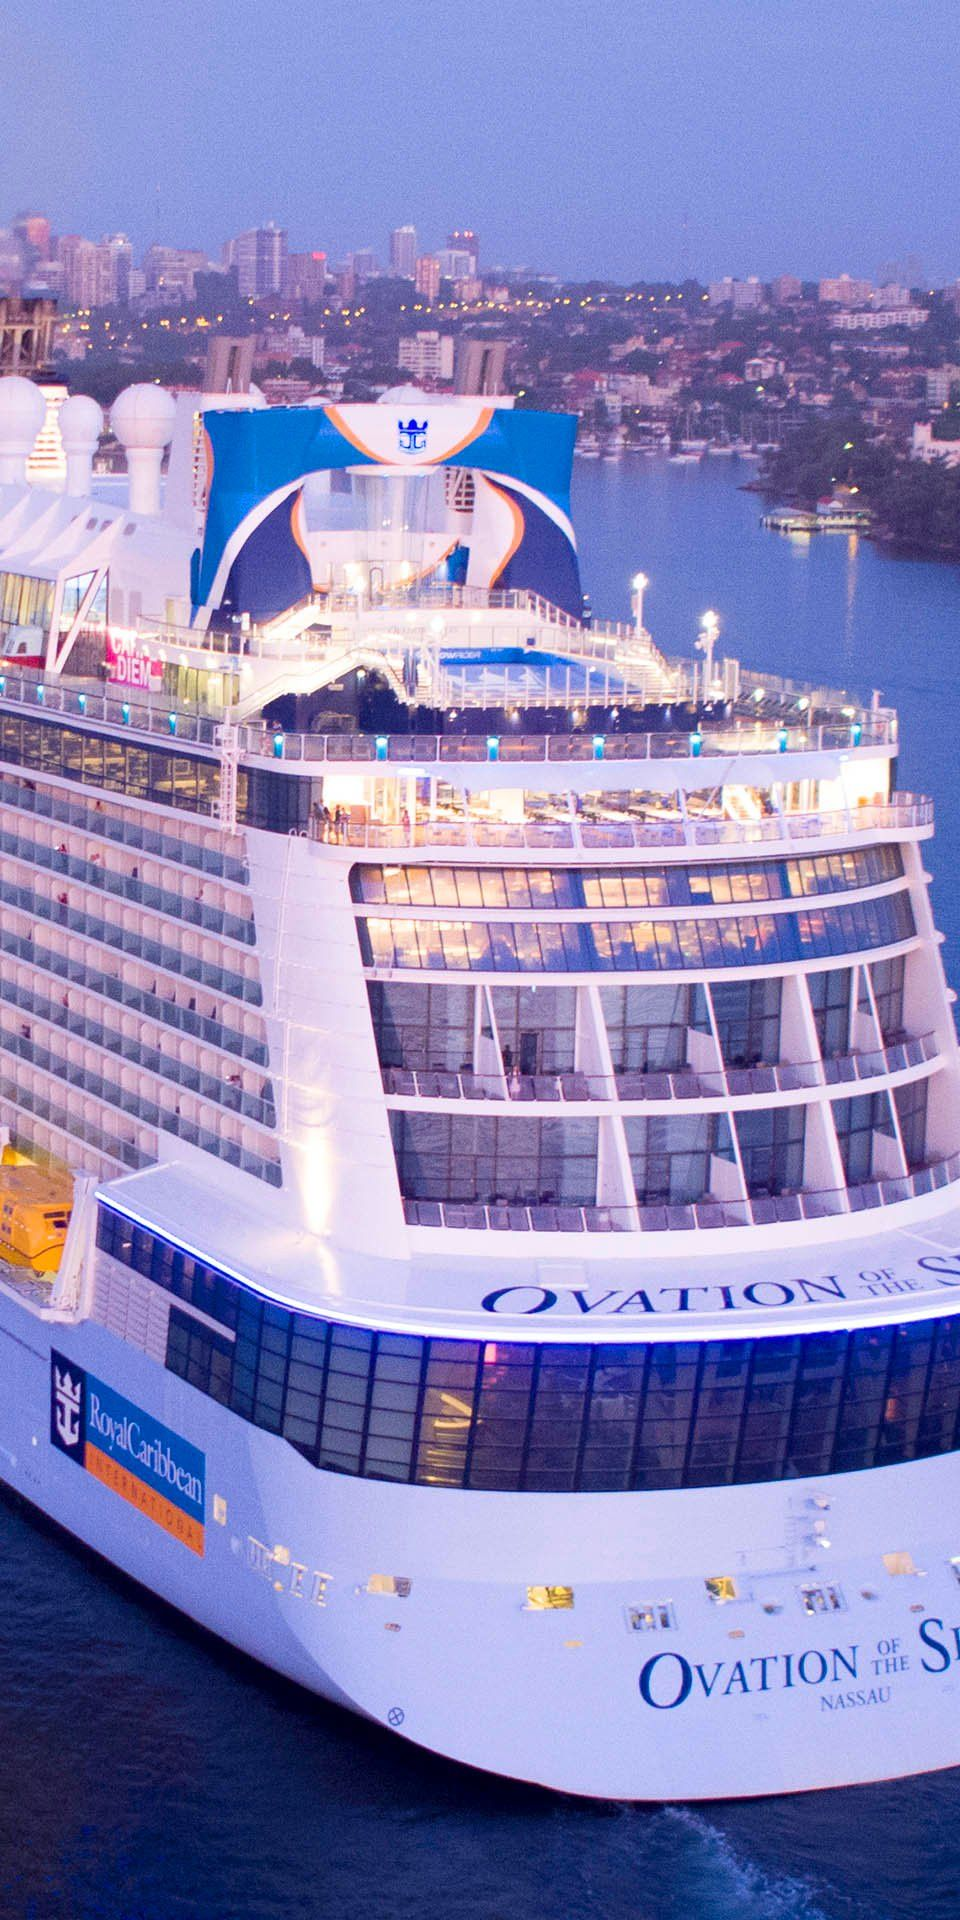 Ovation Of The Seas Start Your Awesome Aussie Adventure Arriving In Style Aboard Ovation Of The Sea Cruise Ship Carribean Cruise Royal Caribbean Cruise Lines